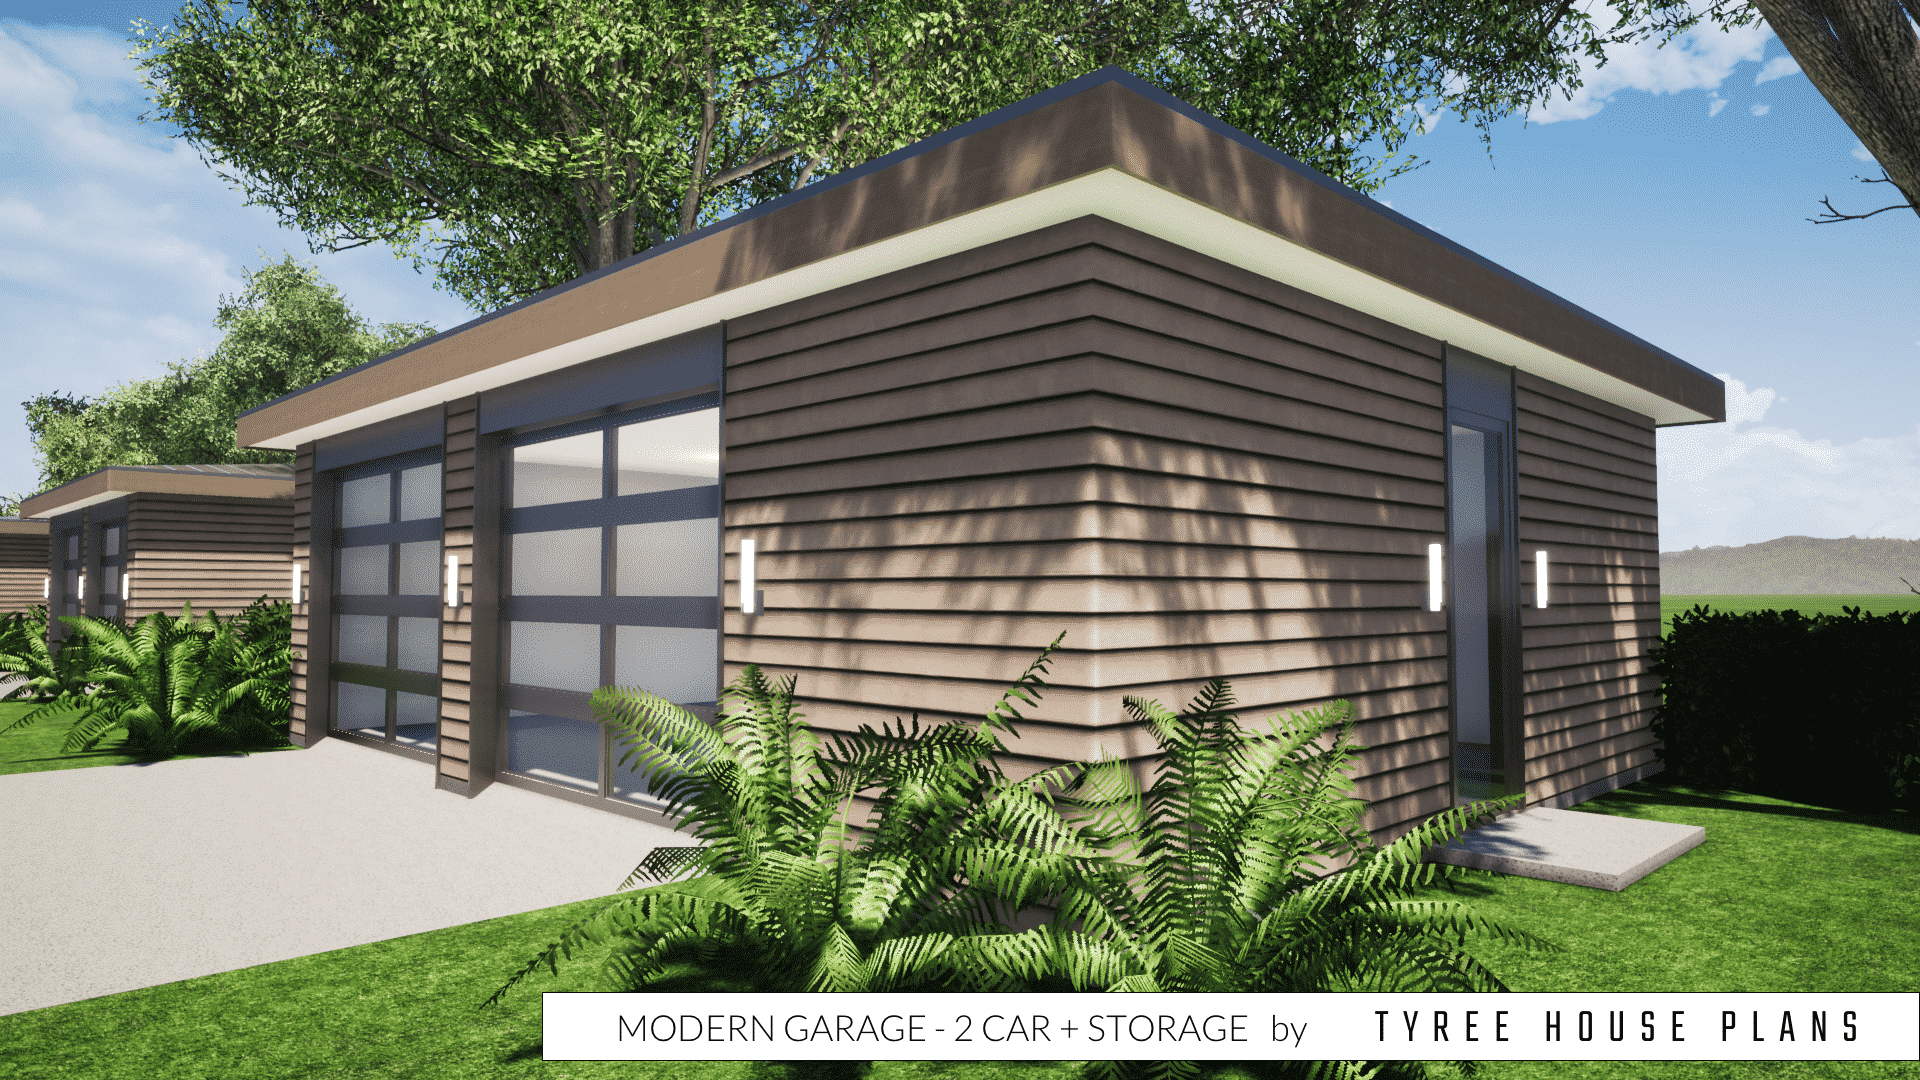 Modern Garage Plan - 2 Car plus Storage by Tyree House Plans